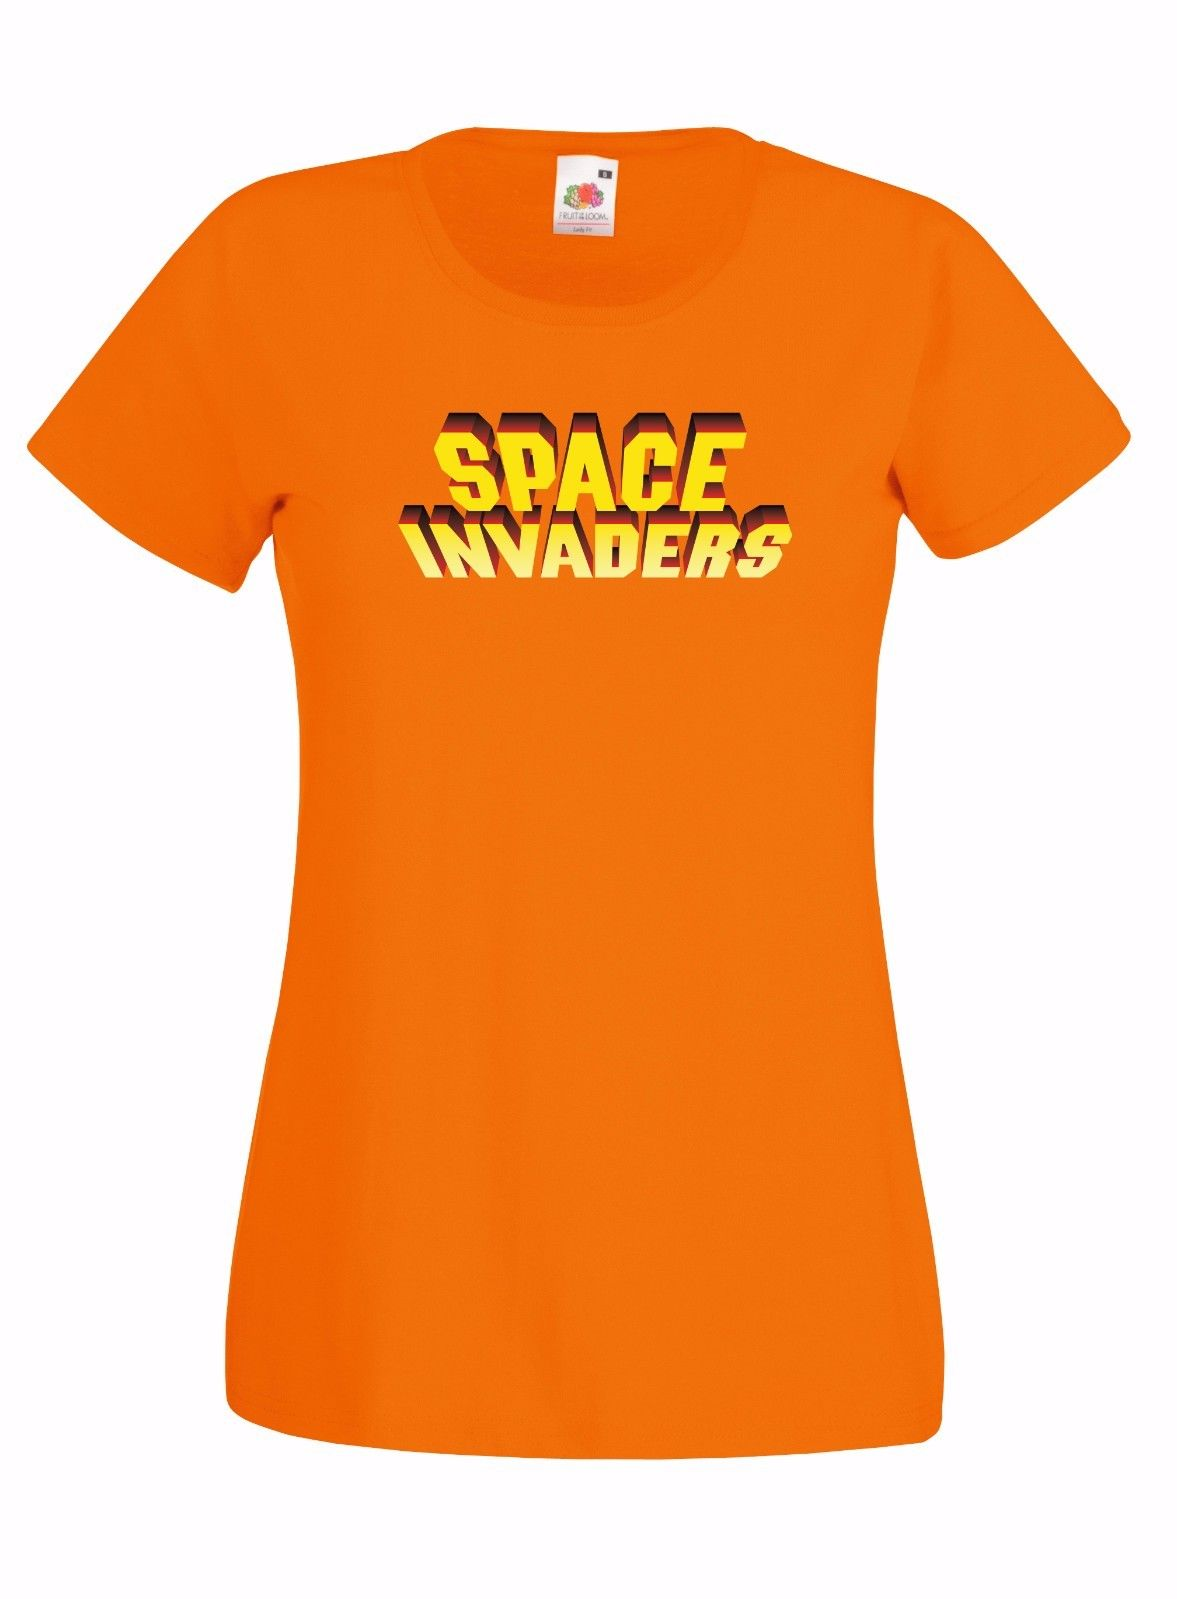 SPACE-INVADERS-INSPIRED-LOGO-GRAPHIC-SKINNY-HIGH-QUALITY-100-COTTON-T-SHIRT